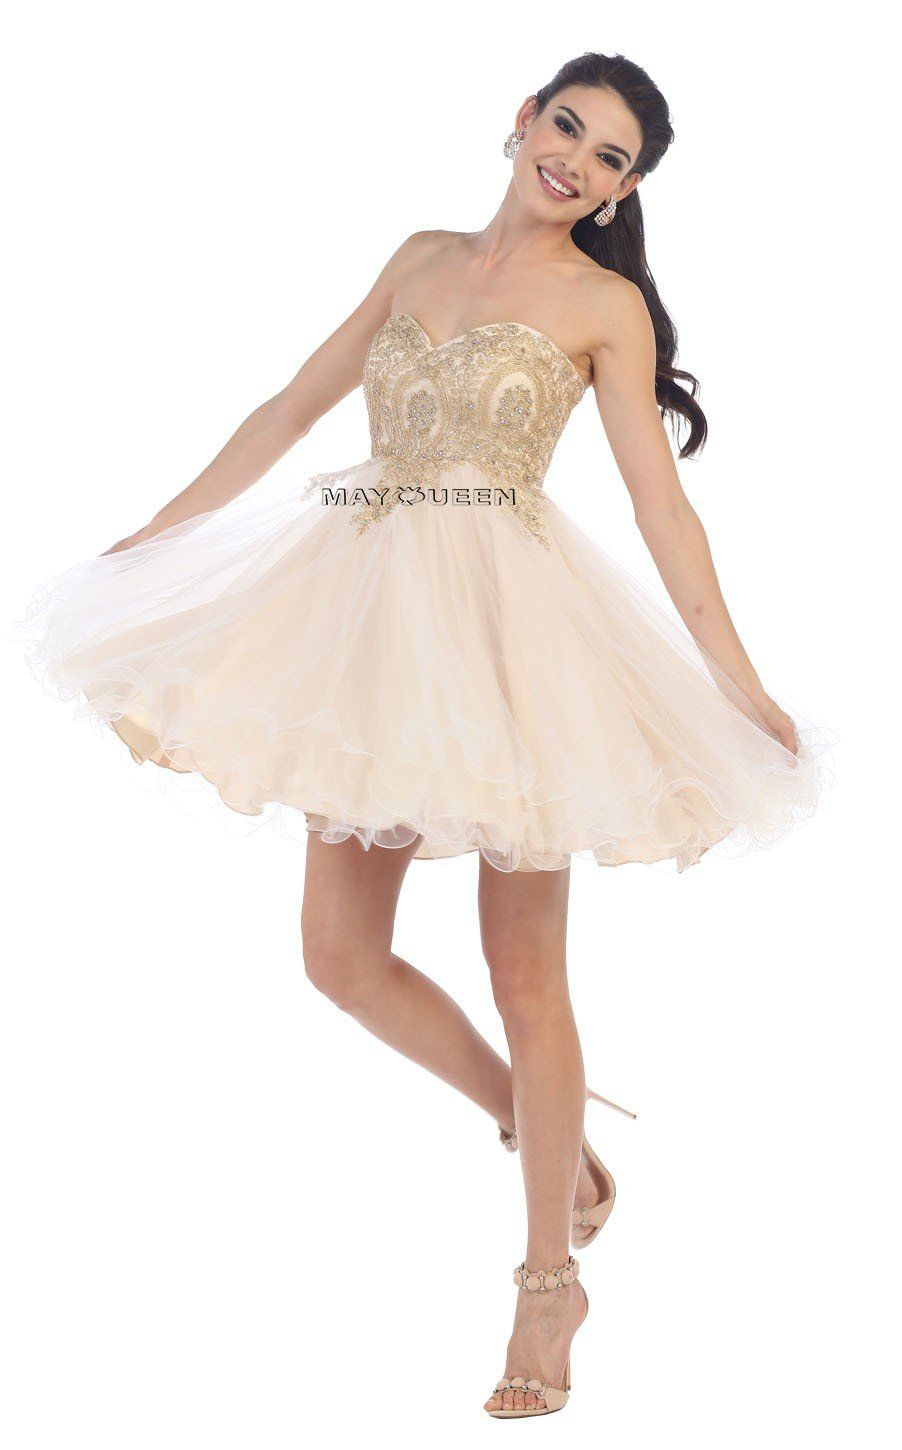 Mq strapless sweetheart u lace applique with tulle skirt